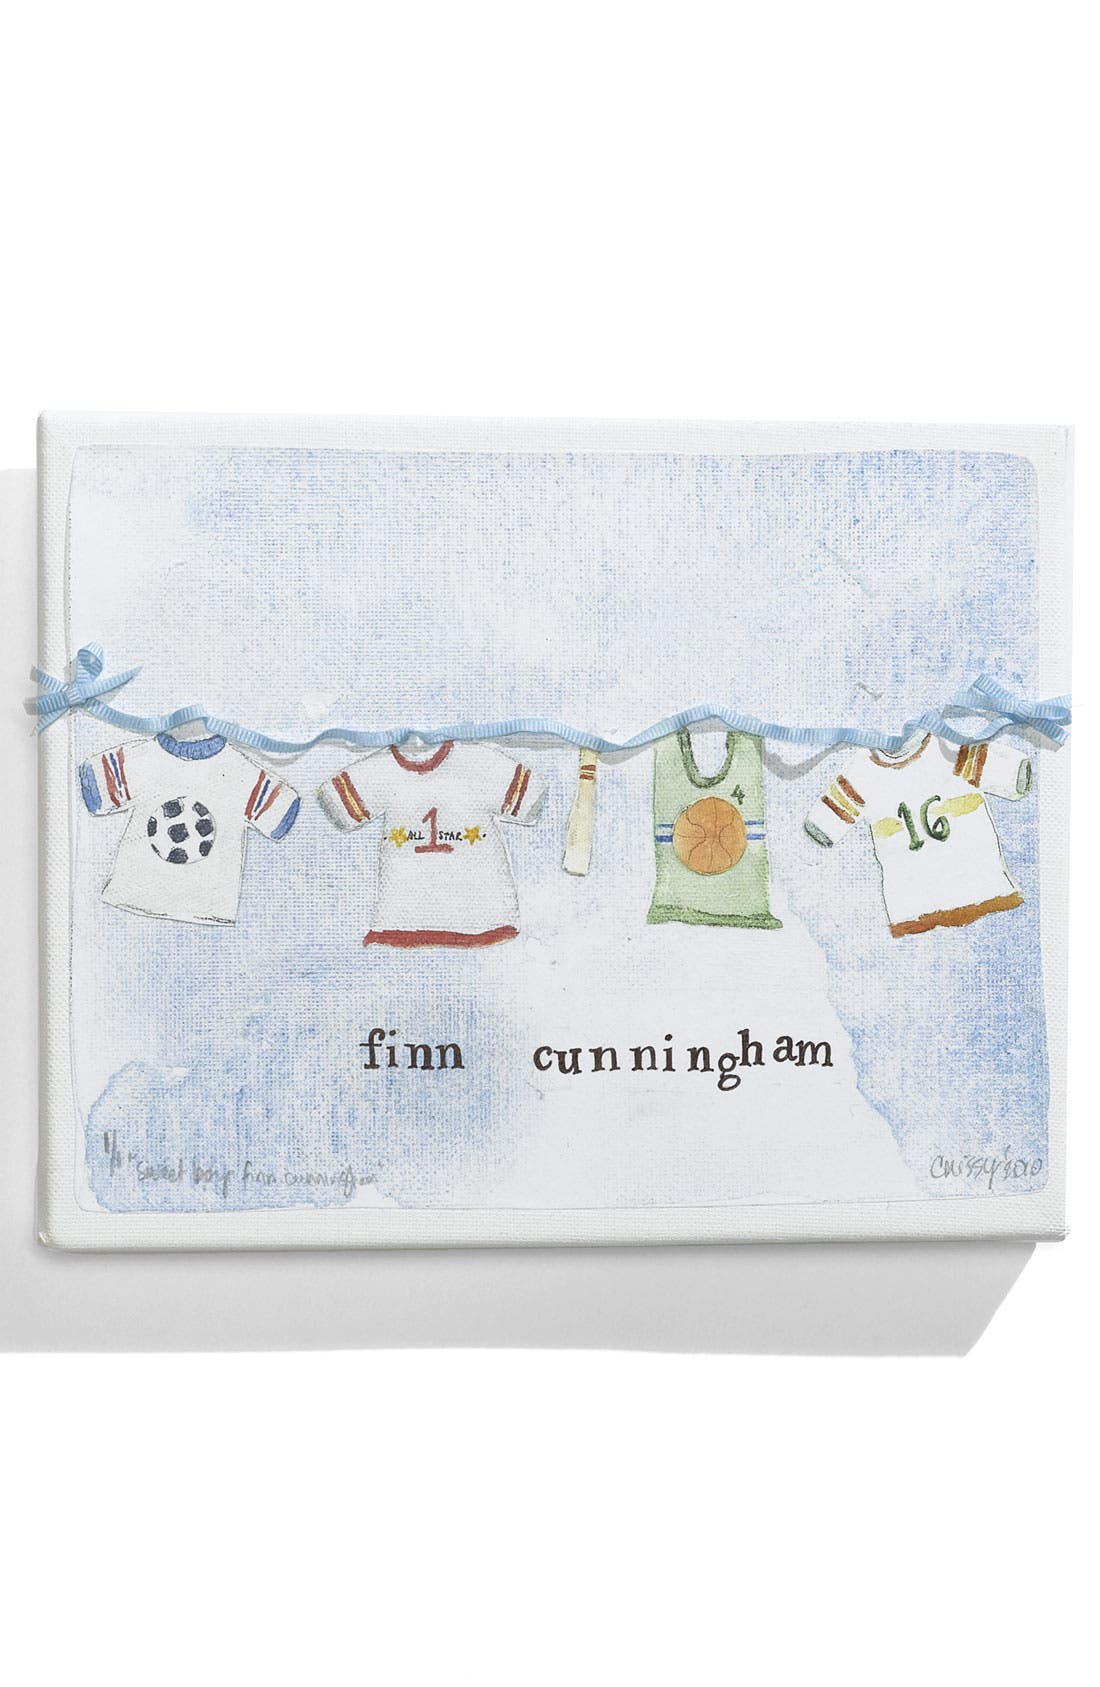 Main Image - Someday Inc. Watercolor-Inspired Personalized Canvas